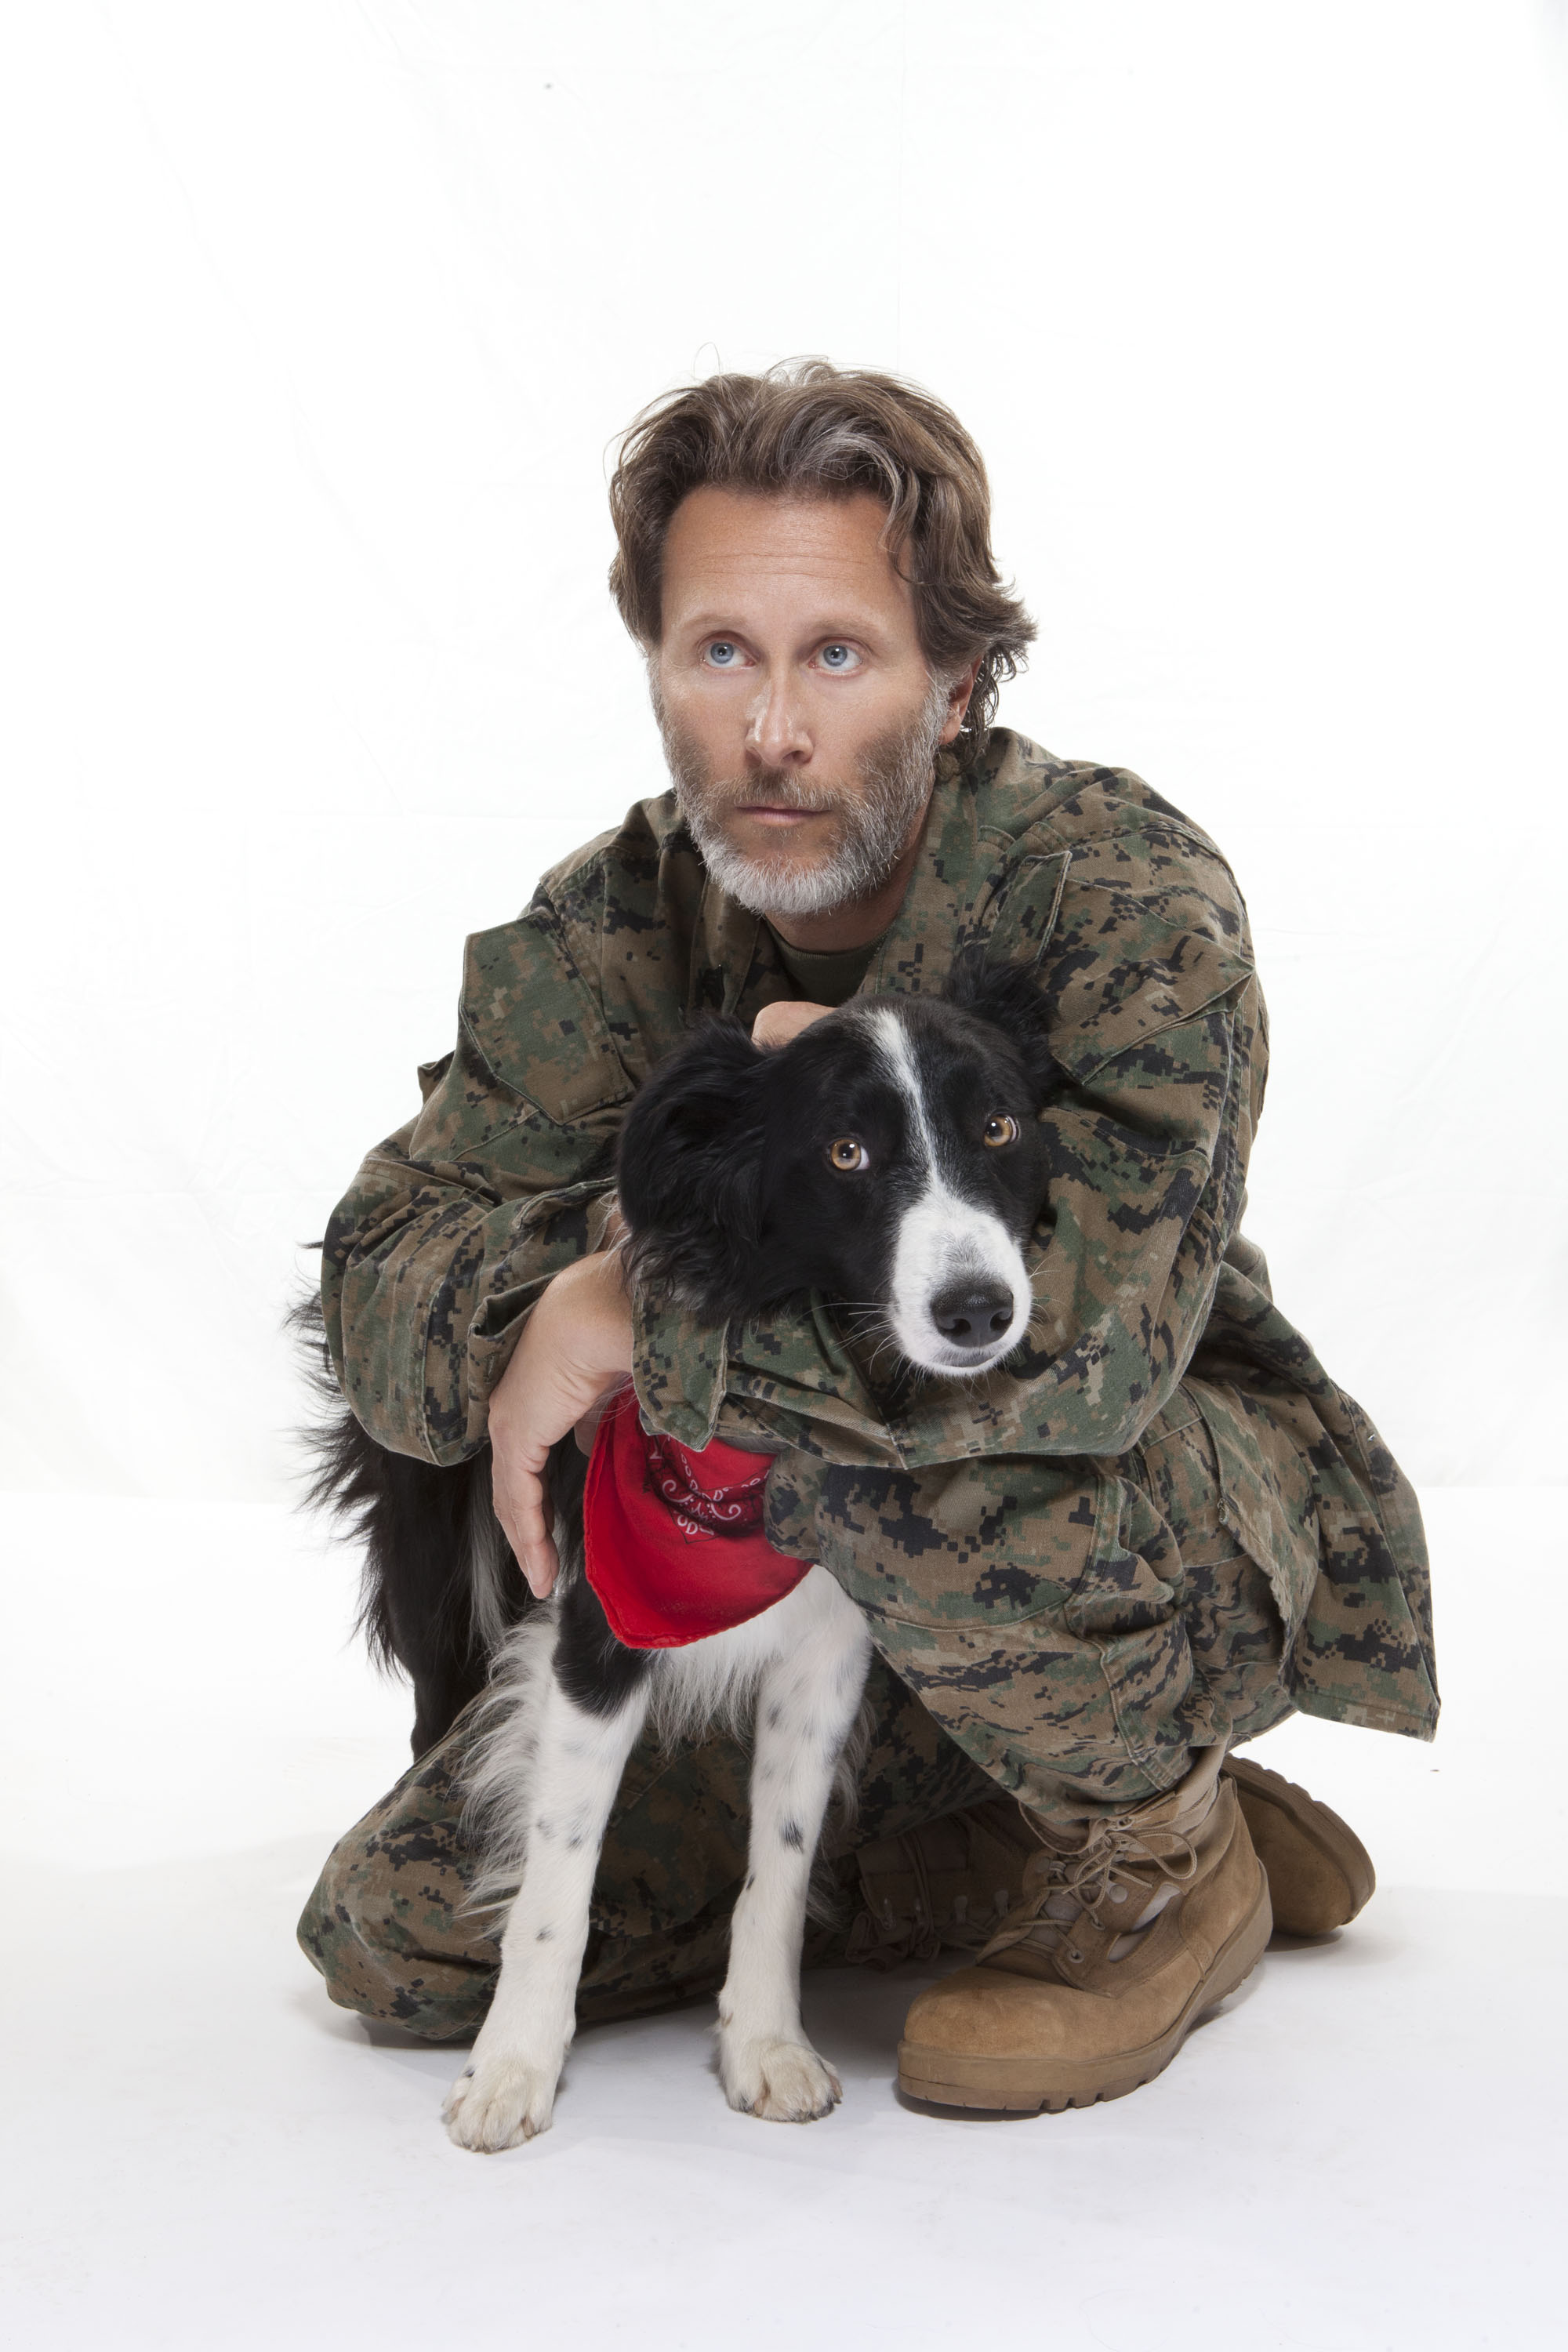 Duke with Steven Weber premieres April 28 on Hallmark Movie Channel